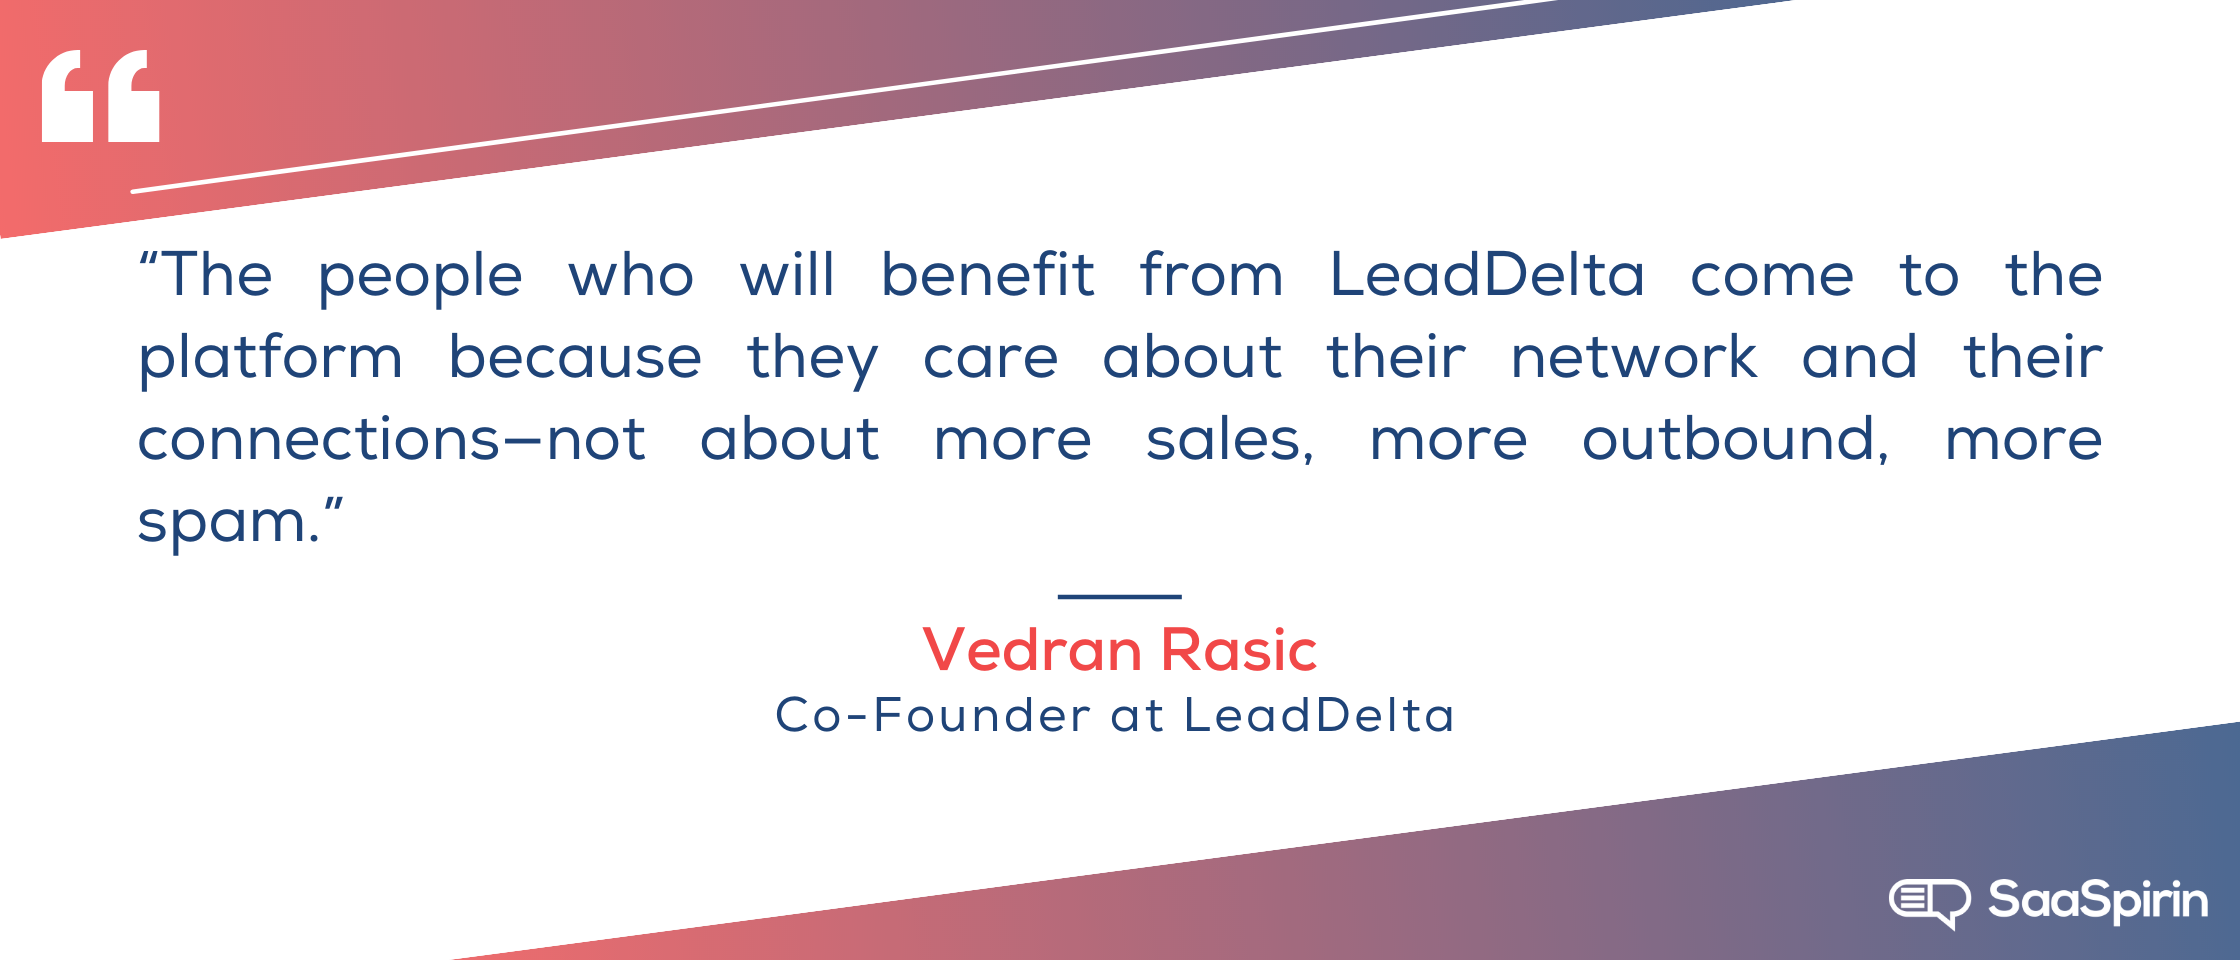 The-people-who-will-benefit-from-LeadDelta-come-to-the-platform-because-they-care-about-their-network-and-their-connections-not-about-more-sales-more-outbound-more-spam.png